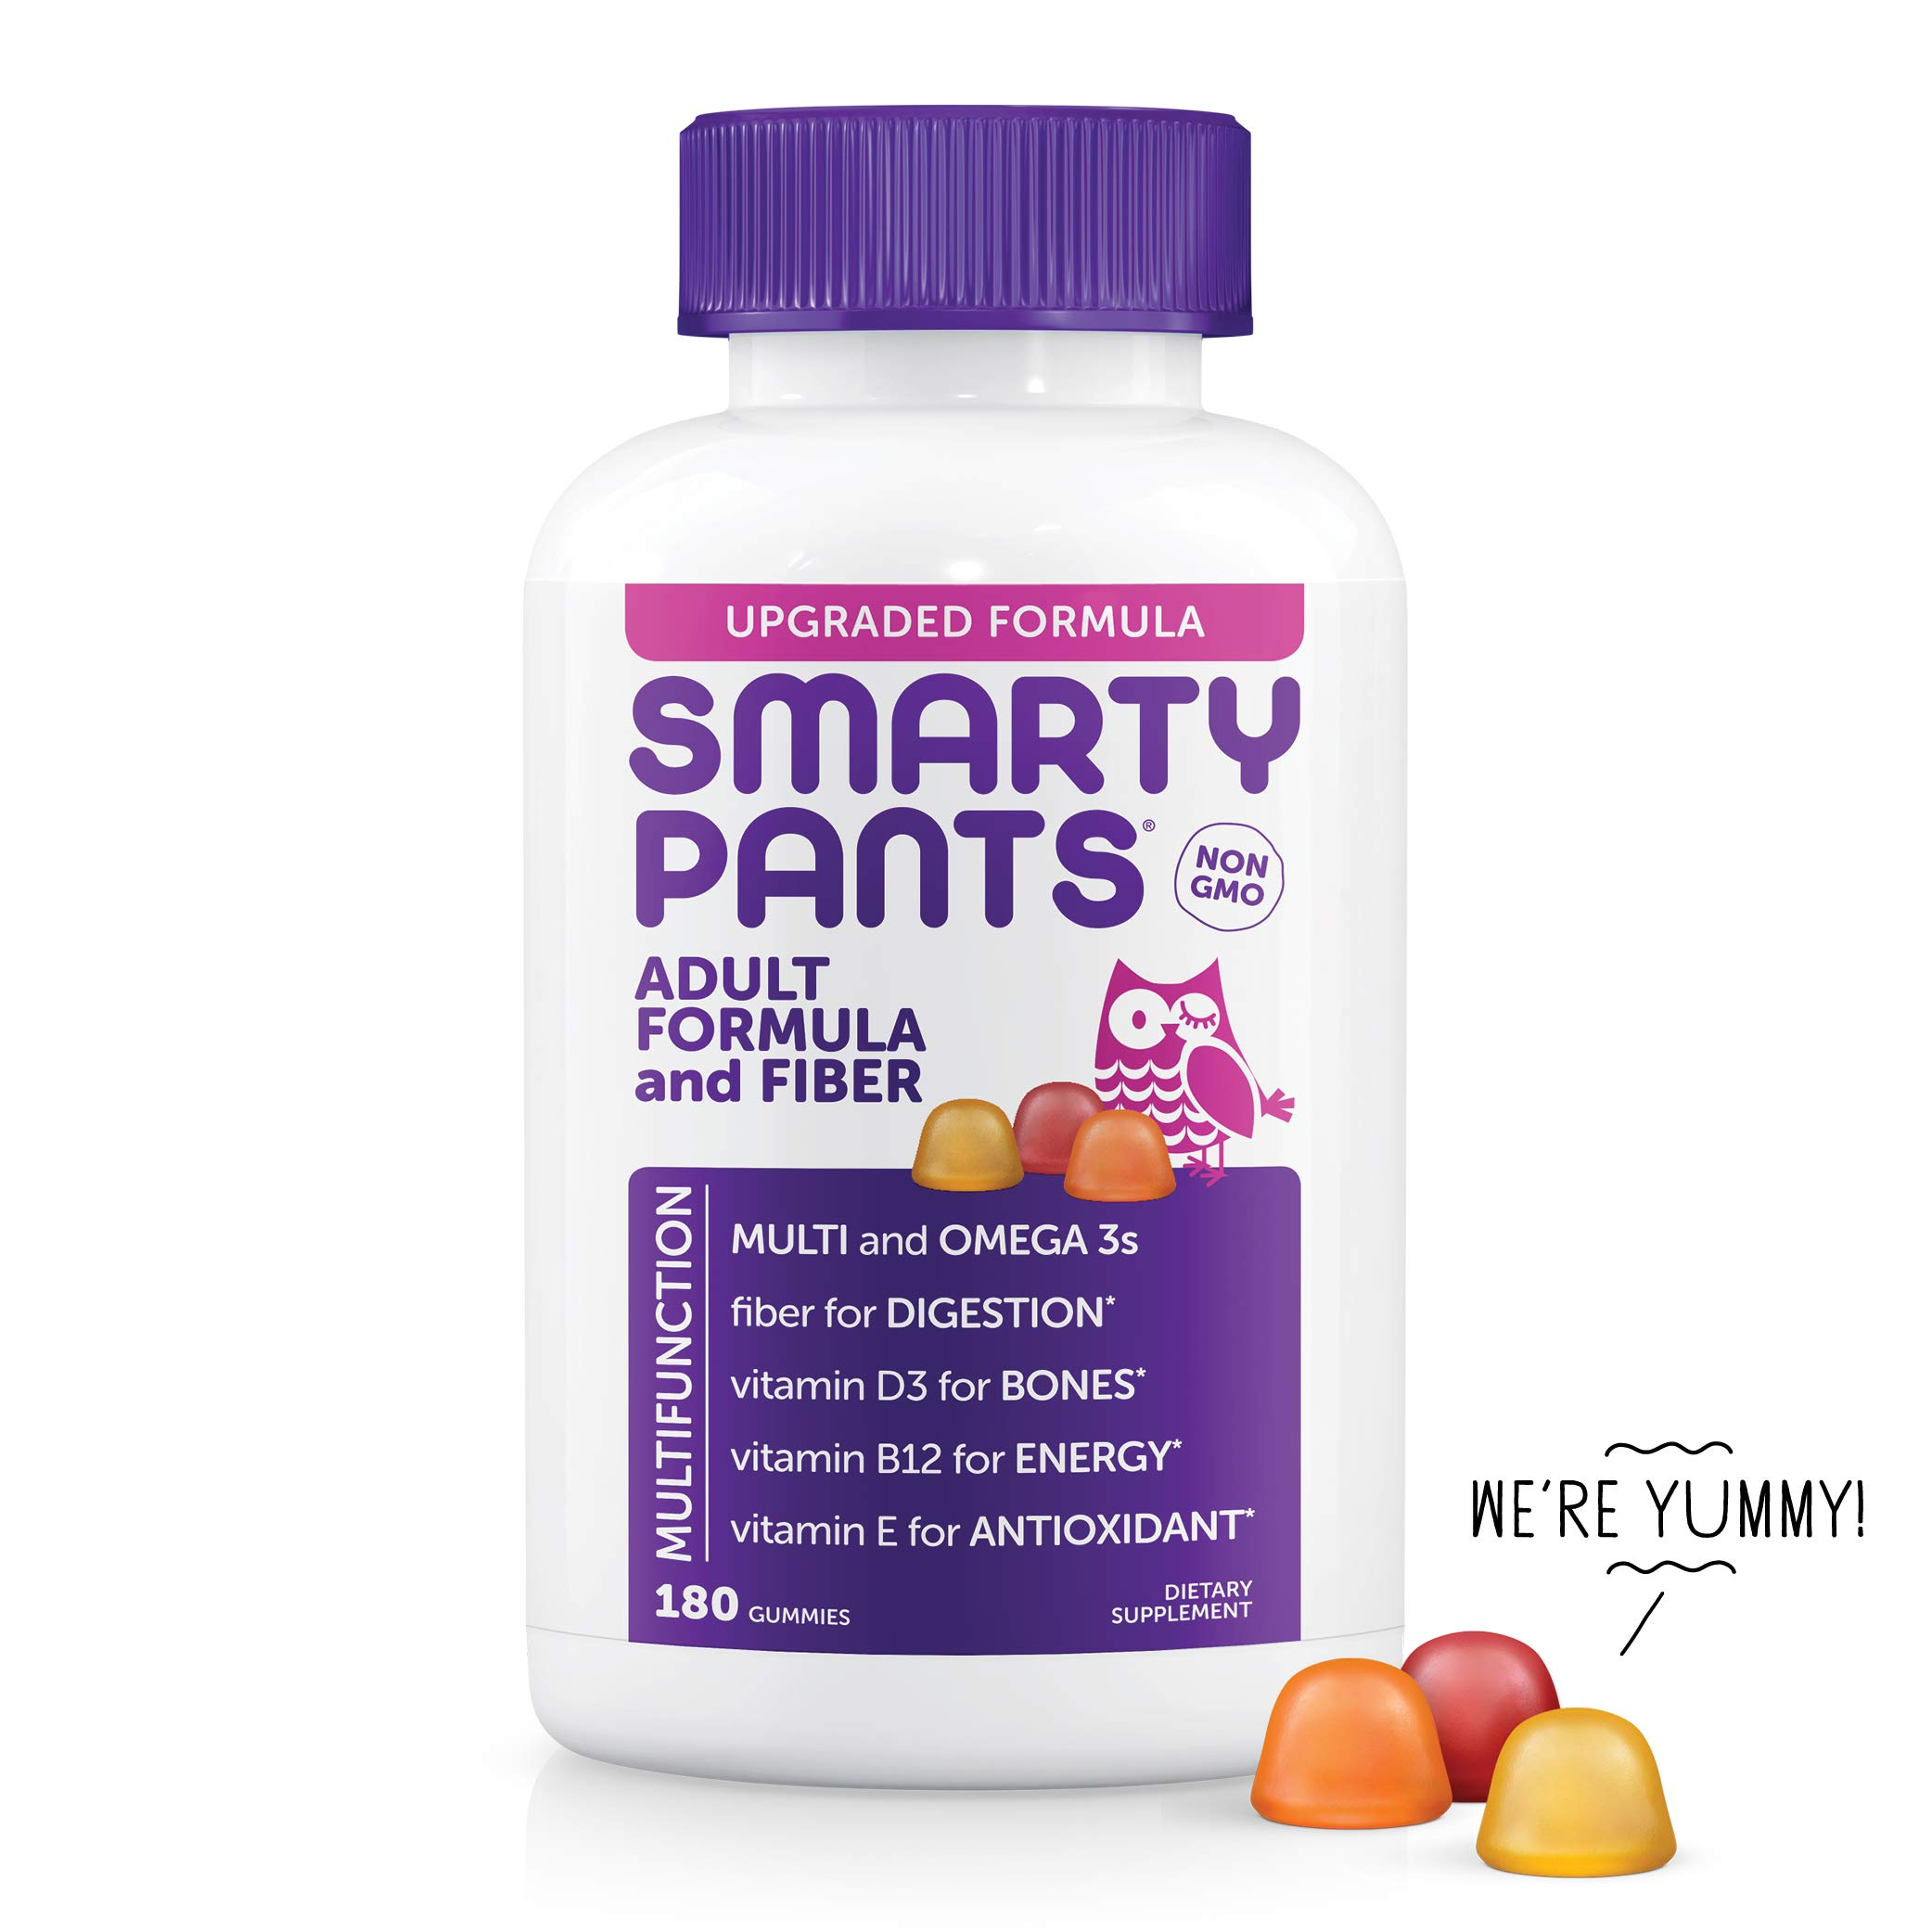 SmartyPants Adult Formula&Fiber Daily Gummy Vitamins:Multivitamin, Inulin Prebiotic Fober,Omega 3(DHA/EPA)Fish Oil,Folate(Methylfolate,Methyl B12,Vitamin D3,180 Count(30 Day Supply)-Packaging May Vary